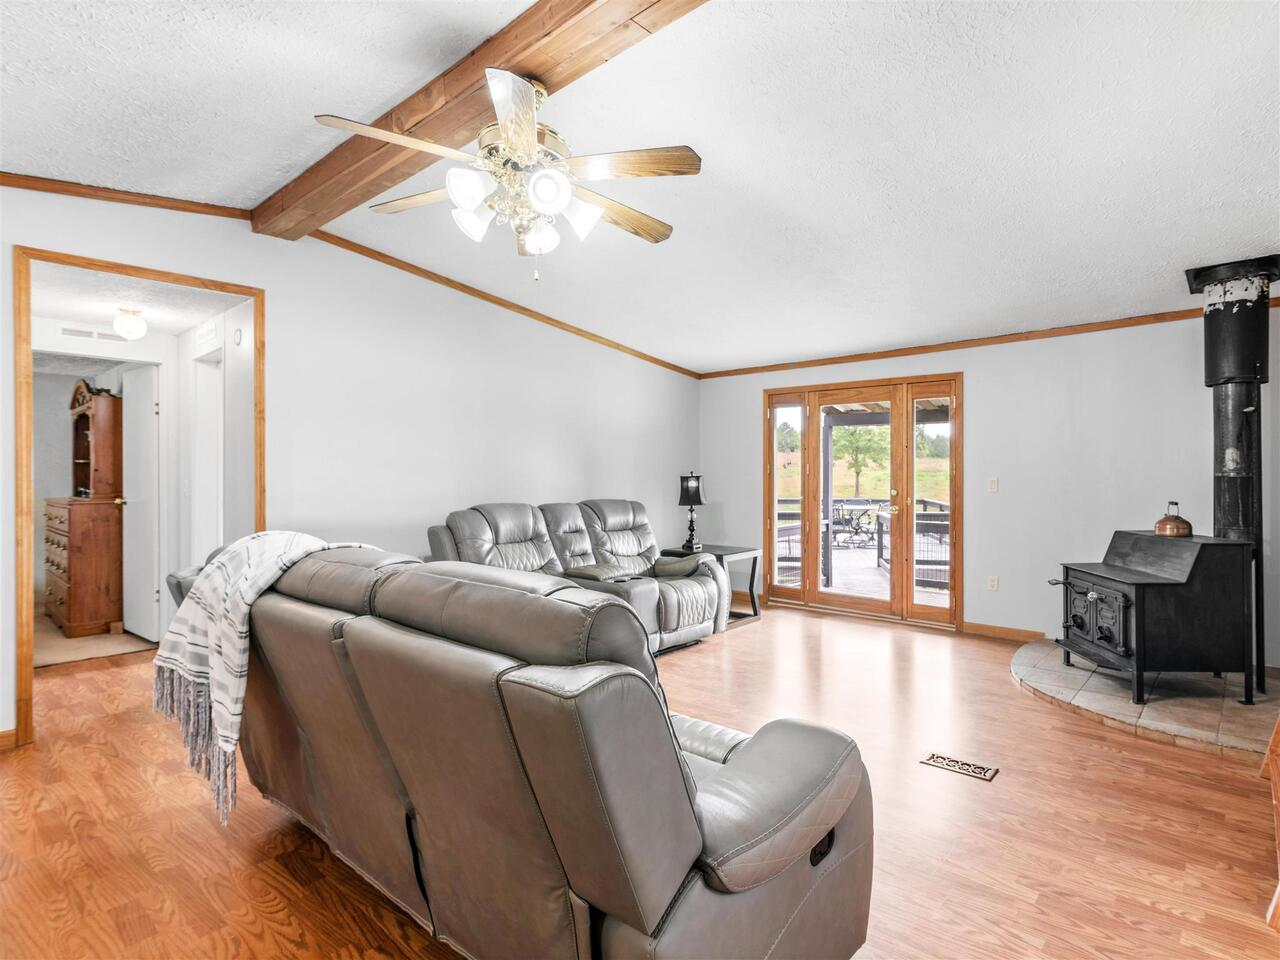 258 Country Kitchen Road Property Photo 16